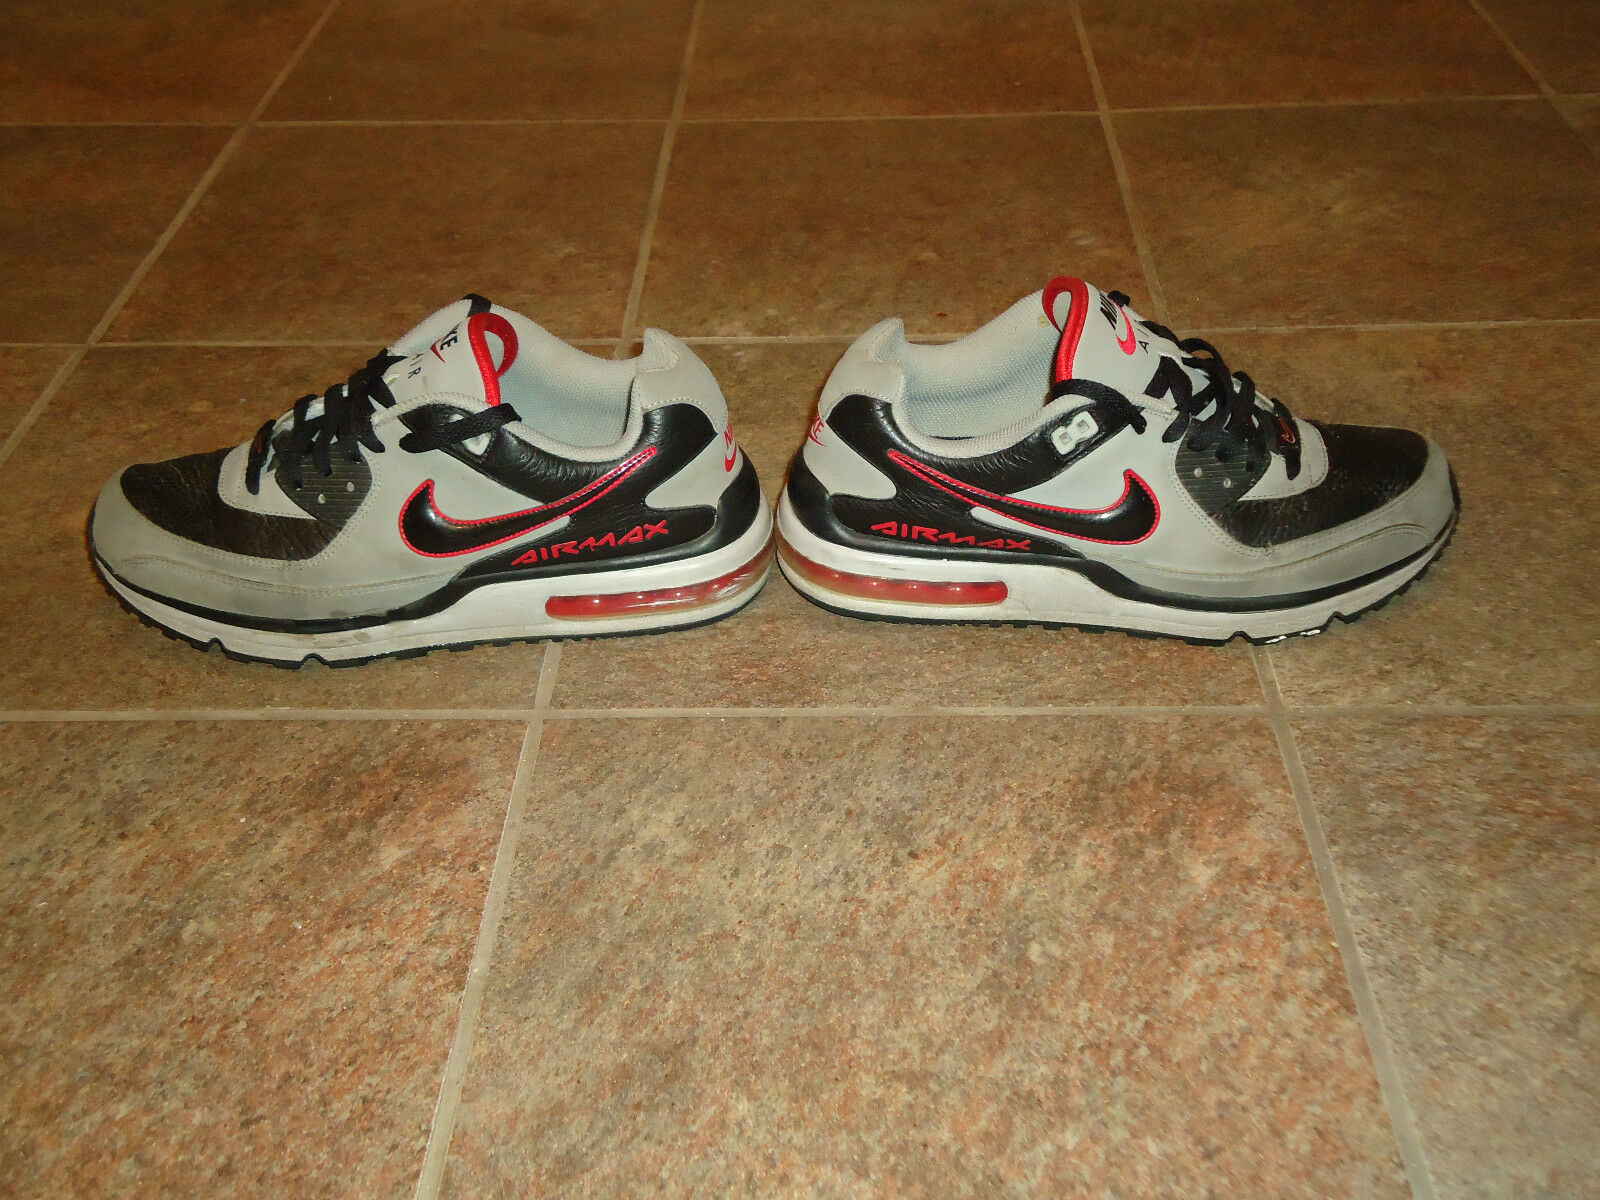 NIKE AIR MAX WRIGHT SHOES SIZE 9.5 9 1/2 MODEL GRAY/RED/BLACK TIDE